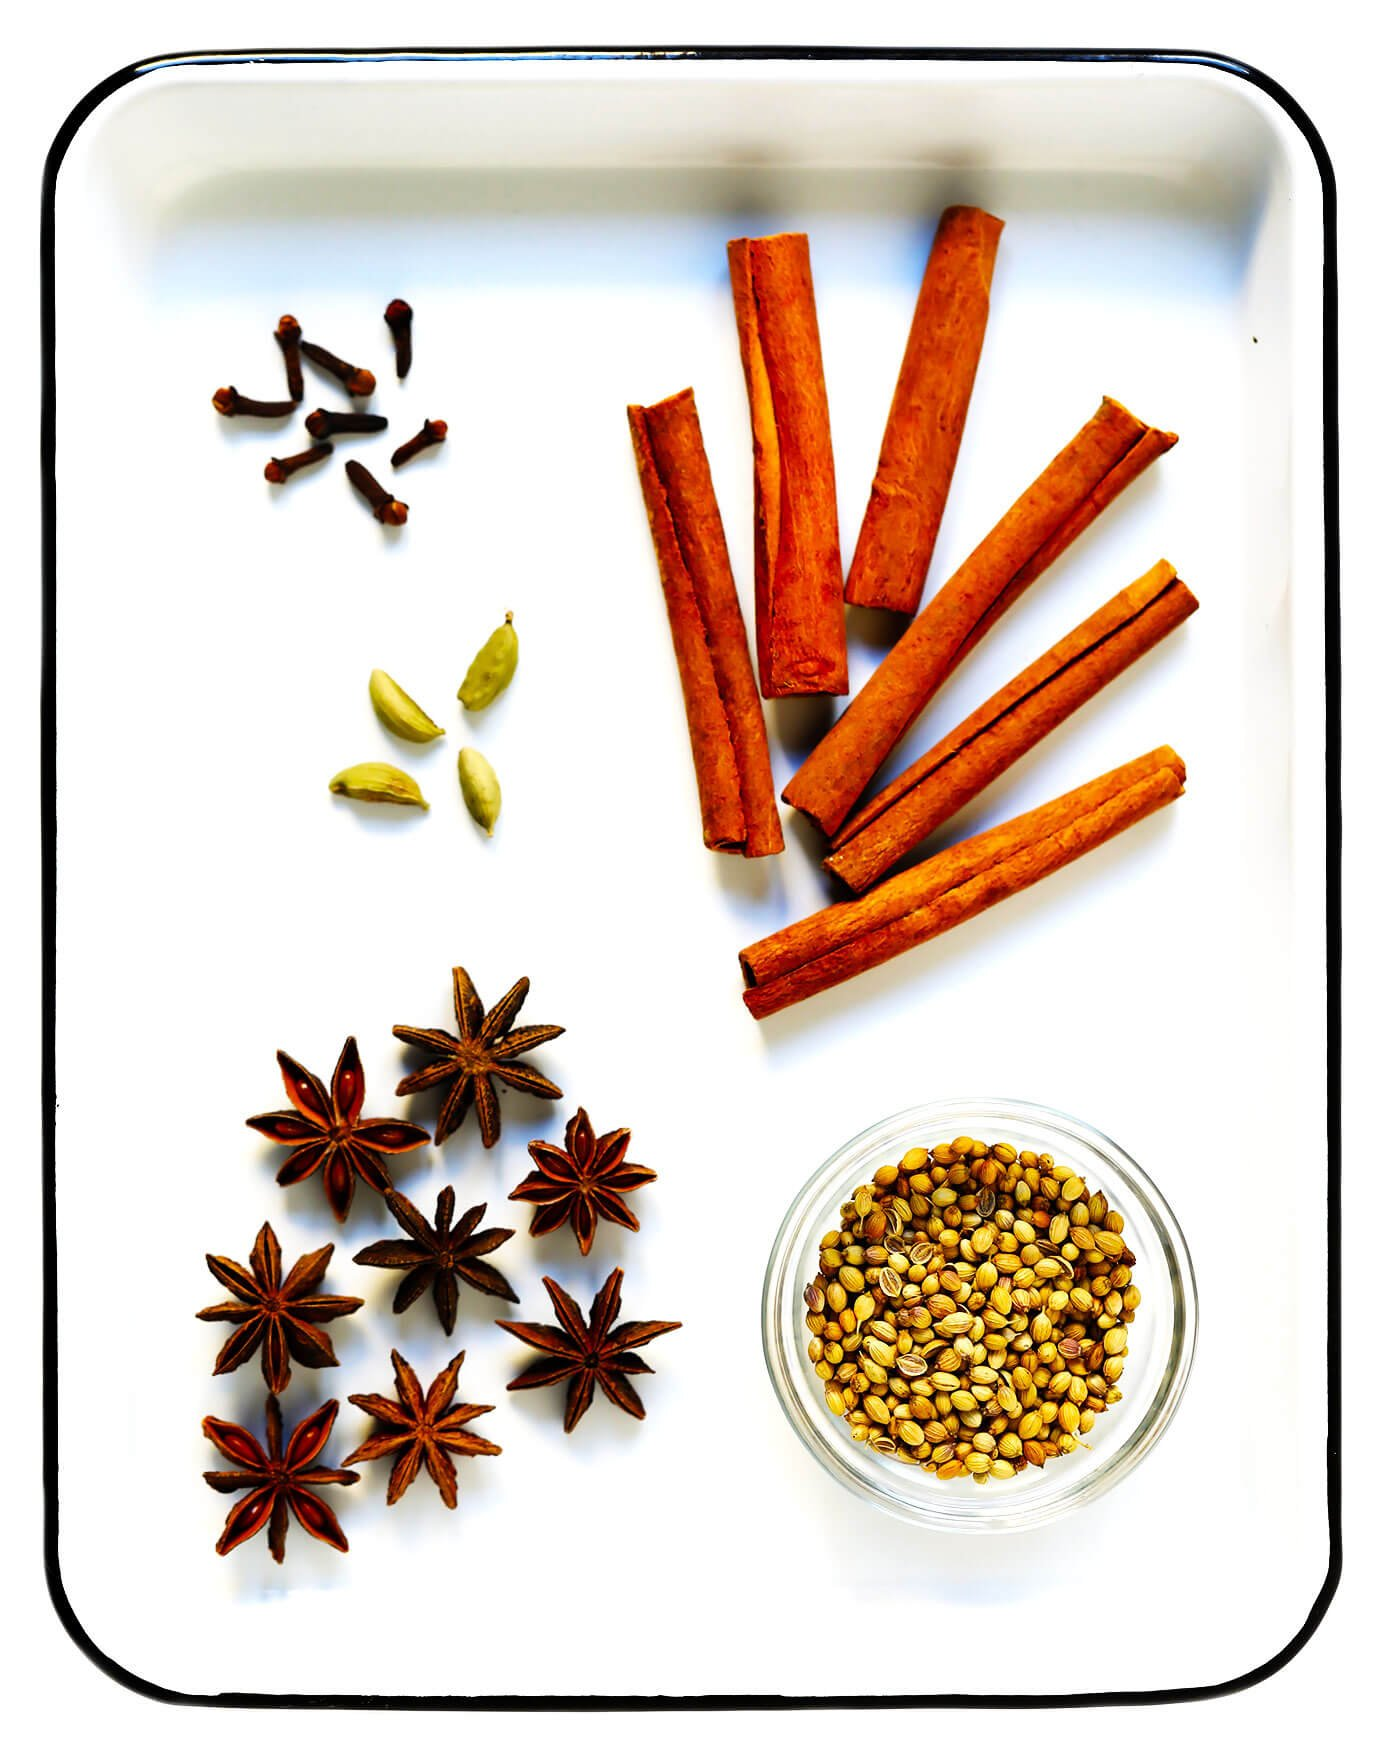 Vietnamese Pho Spices -- Cinnamon, Cloves, Cardamom, Coriander and Star Anise